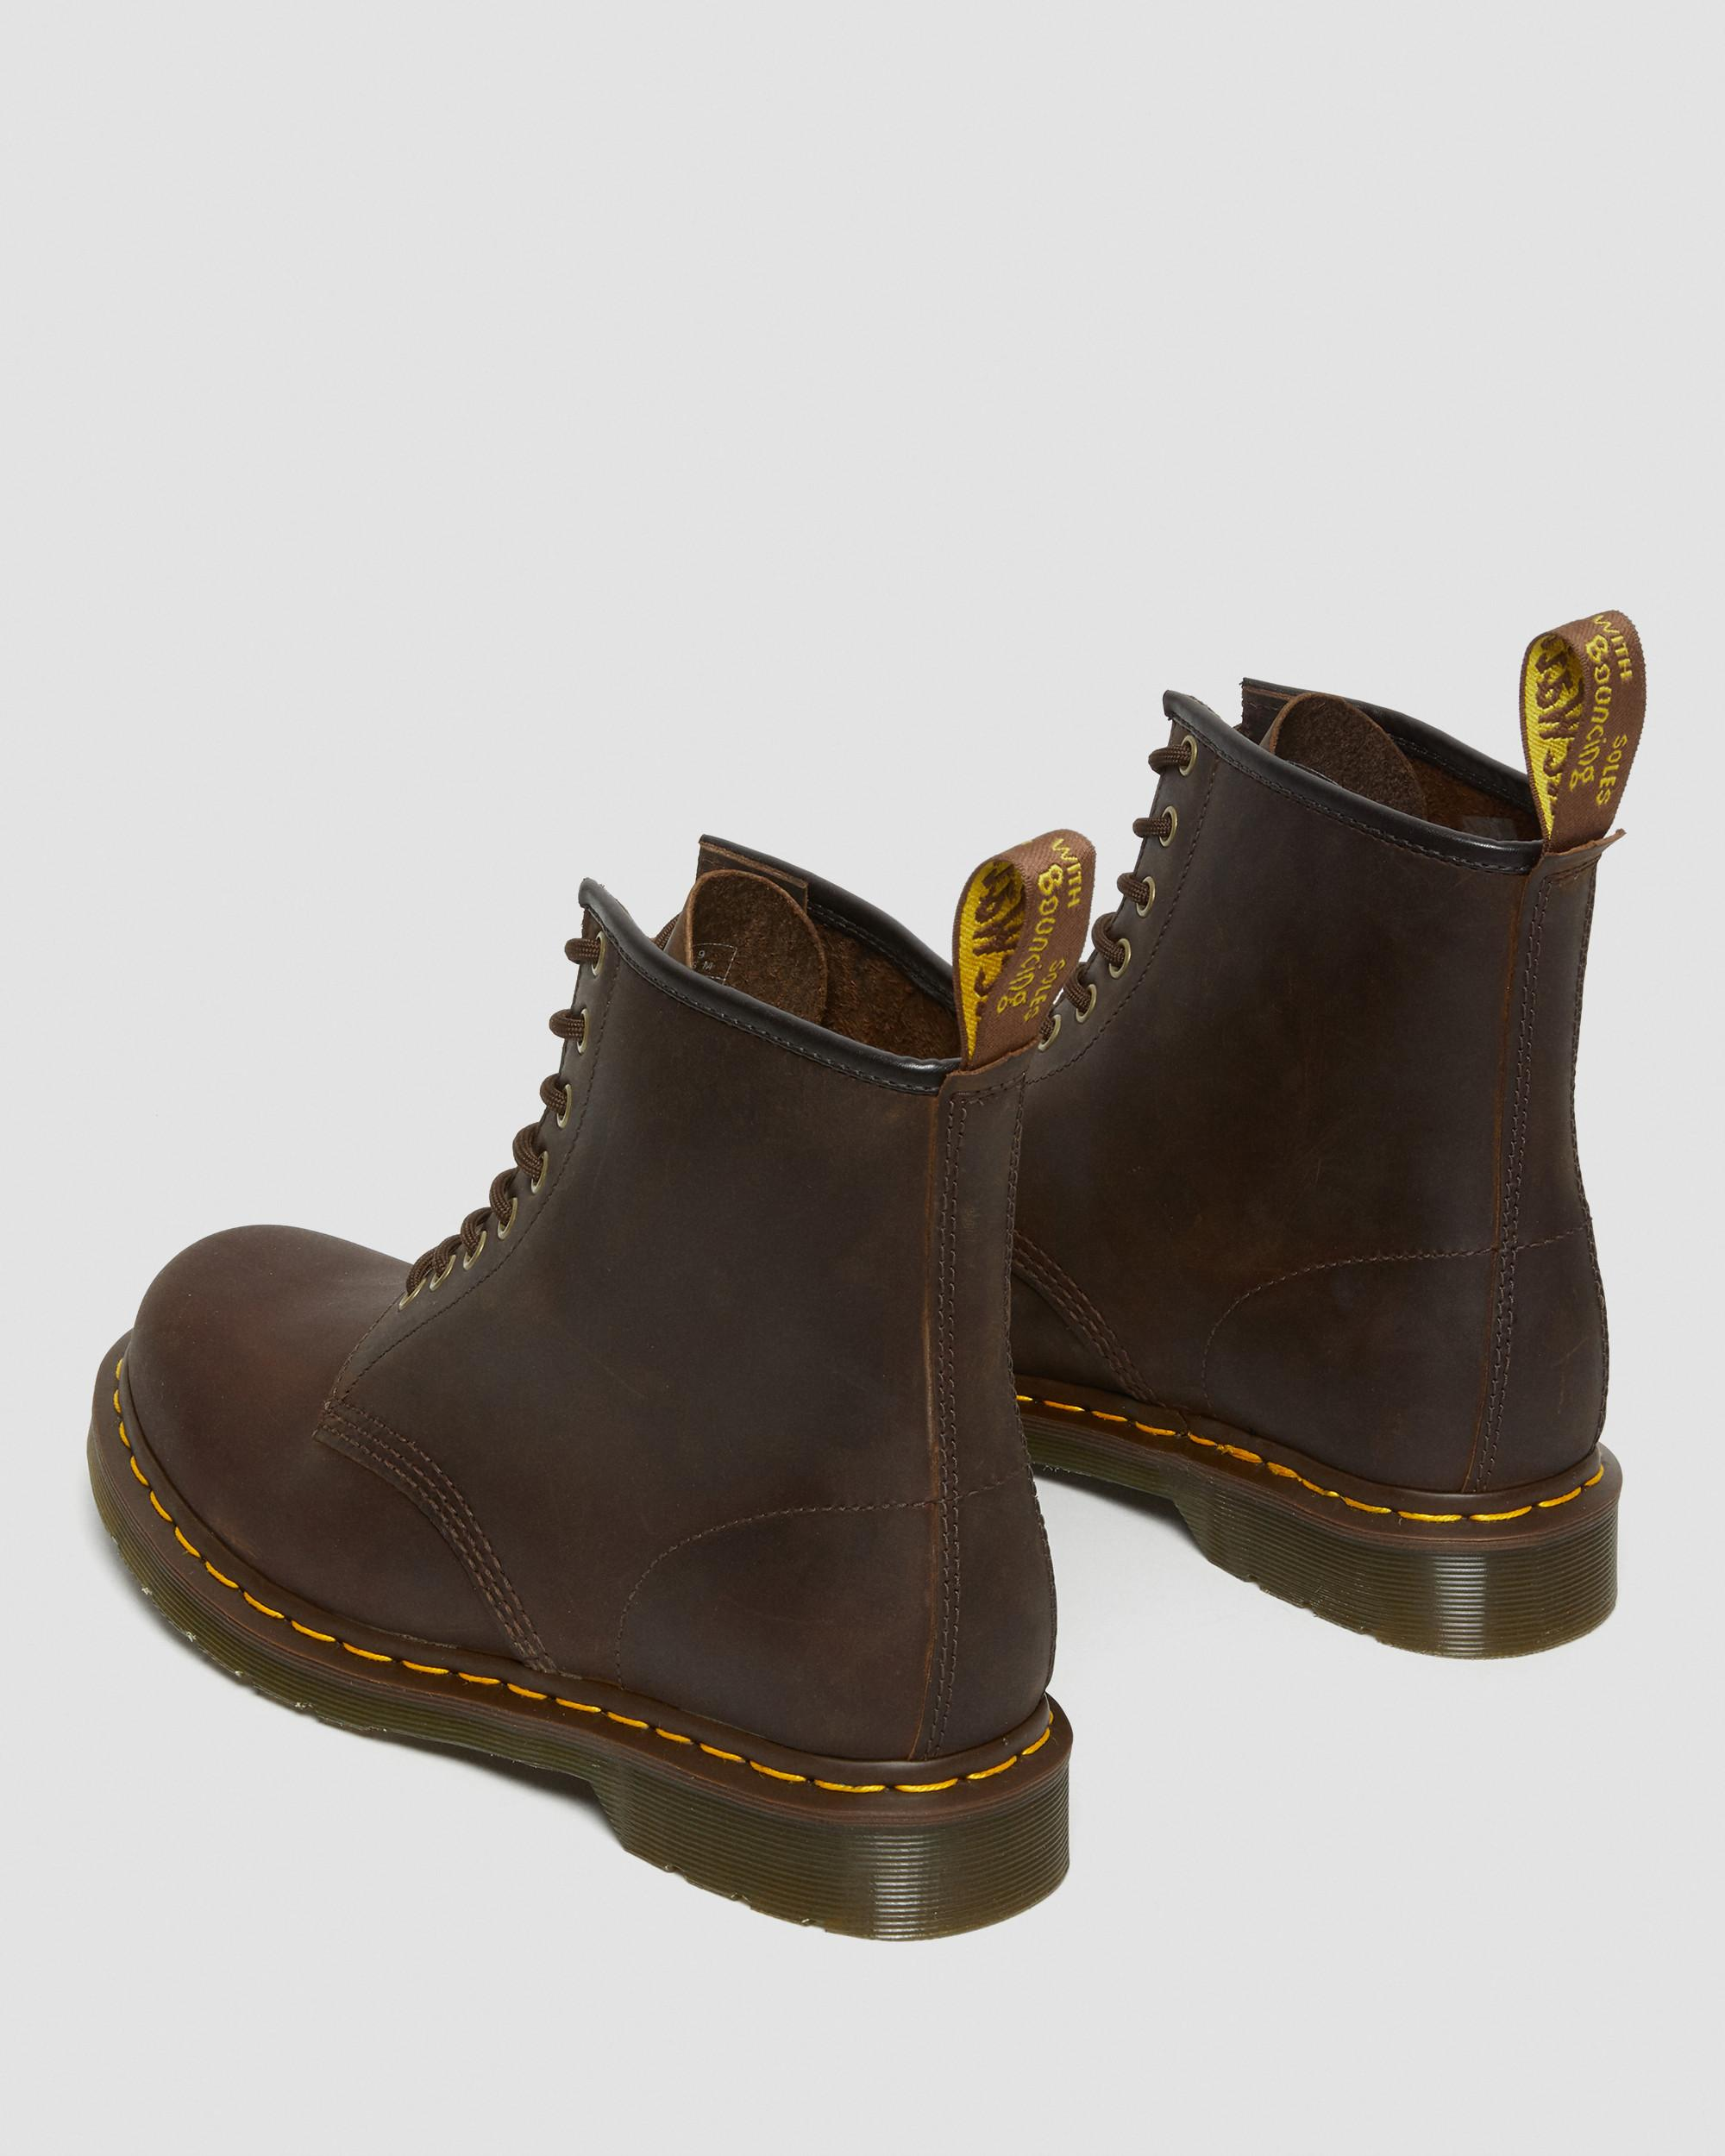 1460 LEATHER ANKLE BOOTS   Dr. Martens UK